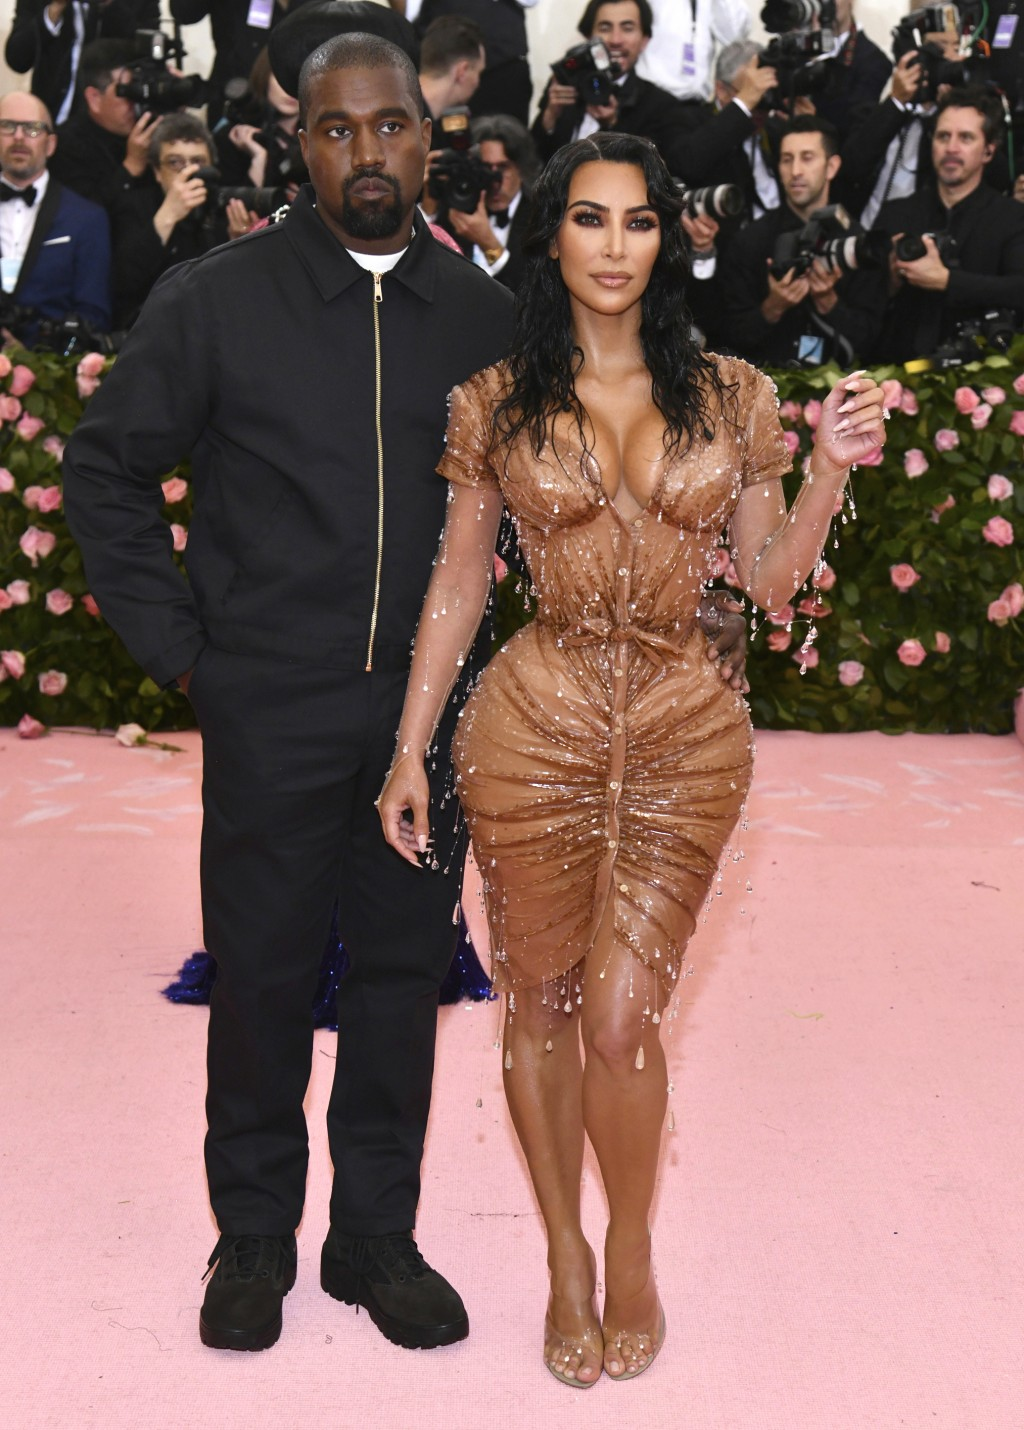 """FILE - Kanye West, left, and Kim Kardashian attend The Metropolitan Museum of Art's Costume Institute benefit gala celebrating the opening of the """"Cam..."""